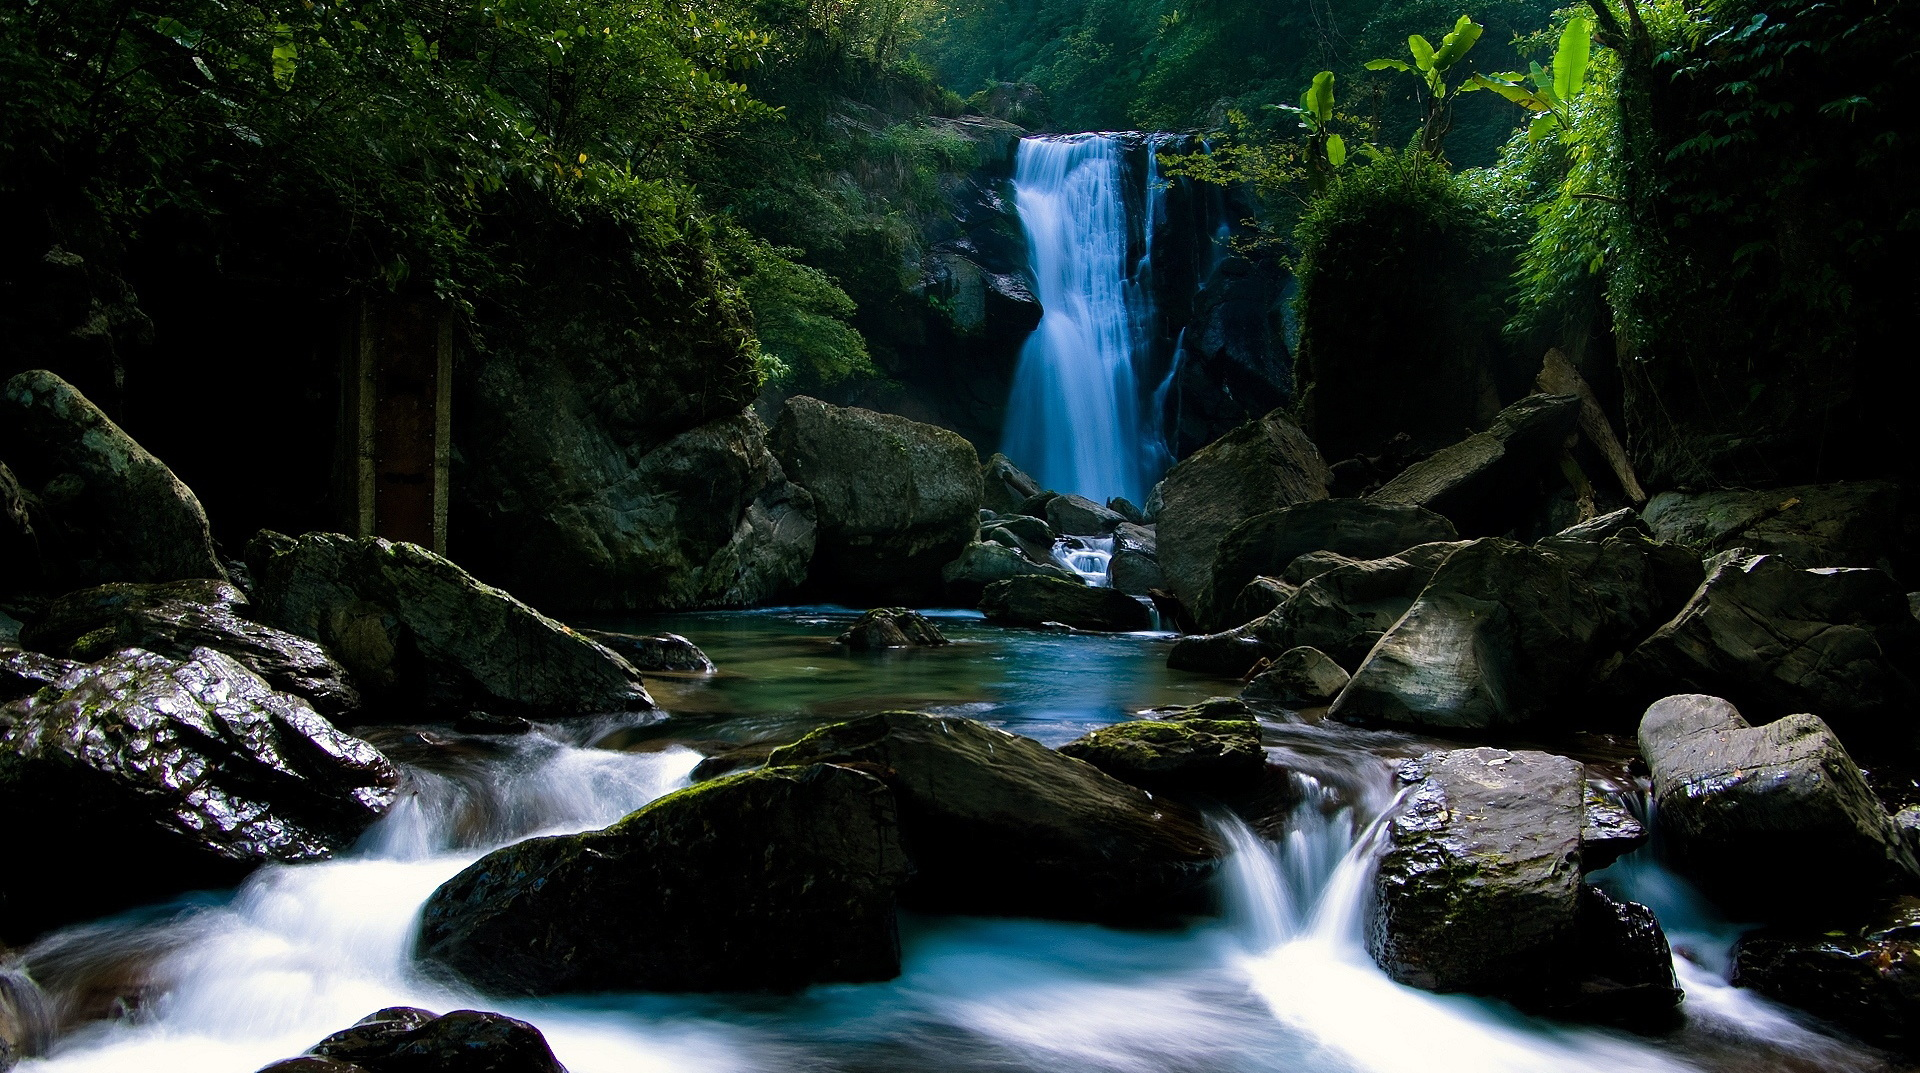 click to free download the wallpaper--photo of nature - The Blue River and a Waterfall, Natural Plants Alongside, an Impressive Scene 1920X1080 free wallpaper download